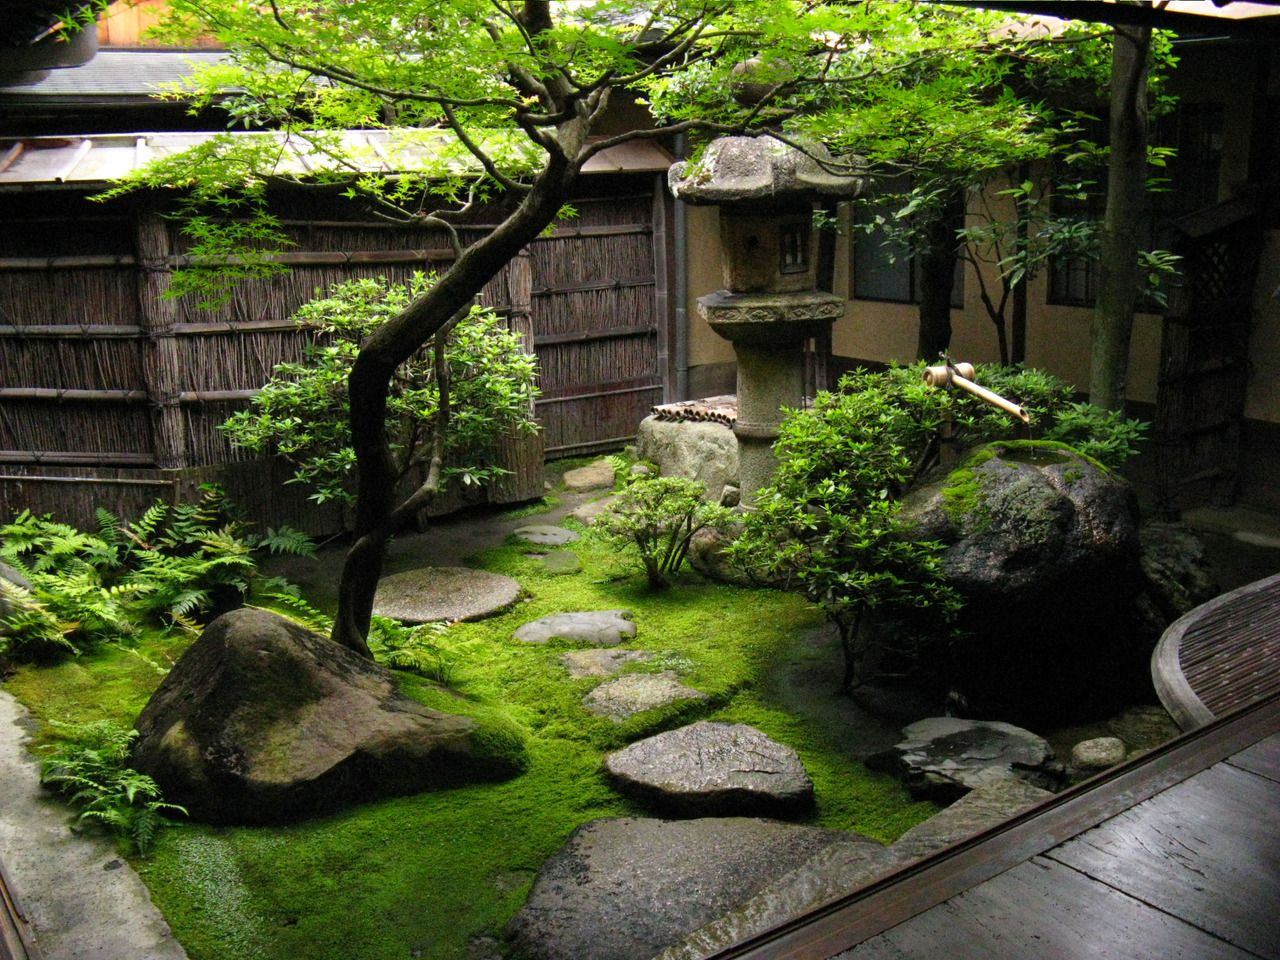 5a763d966cedc186232f9c5e040c1009 - Landscapes For Small Spaces Japanese Courtyard Gardens